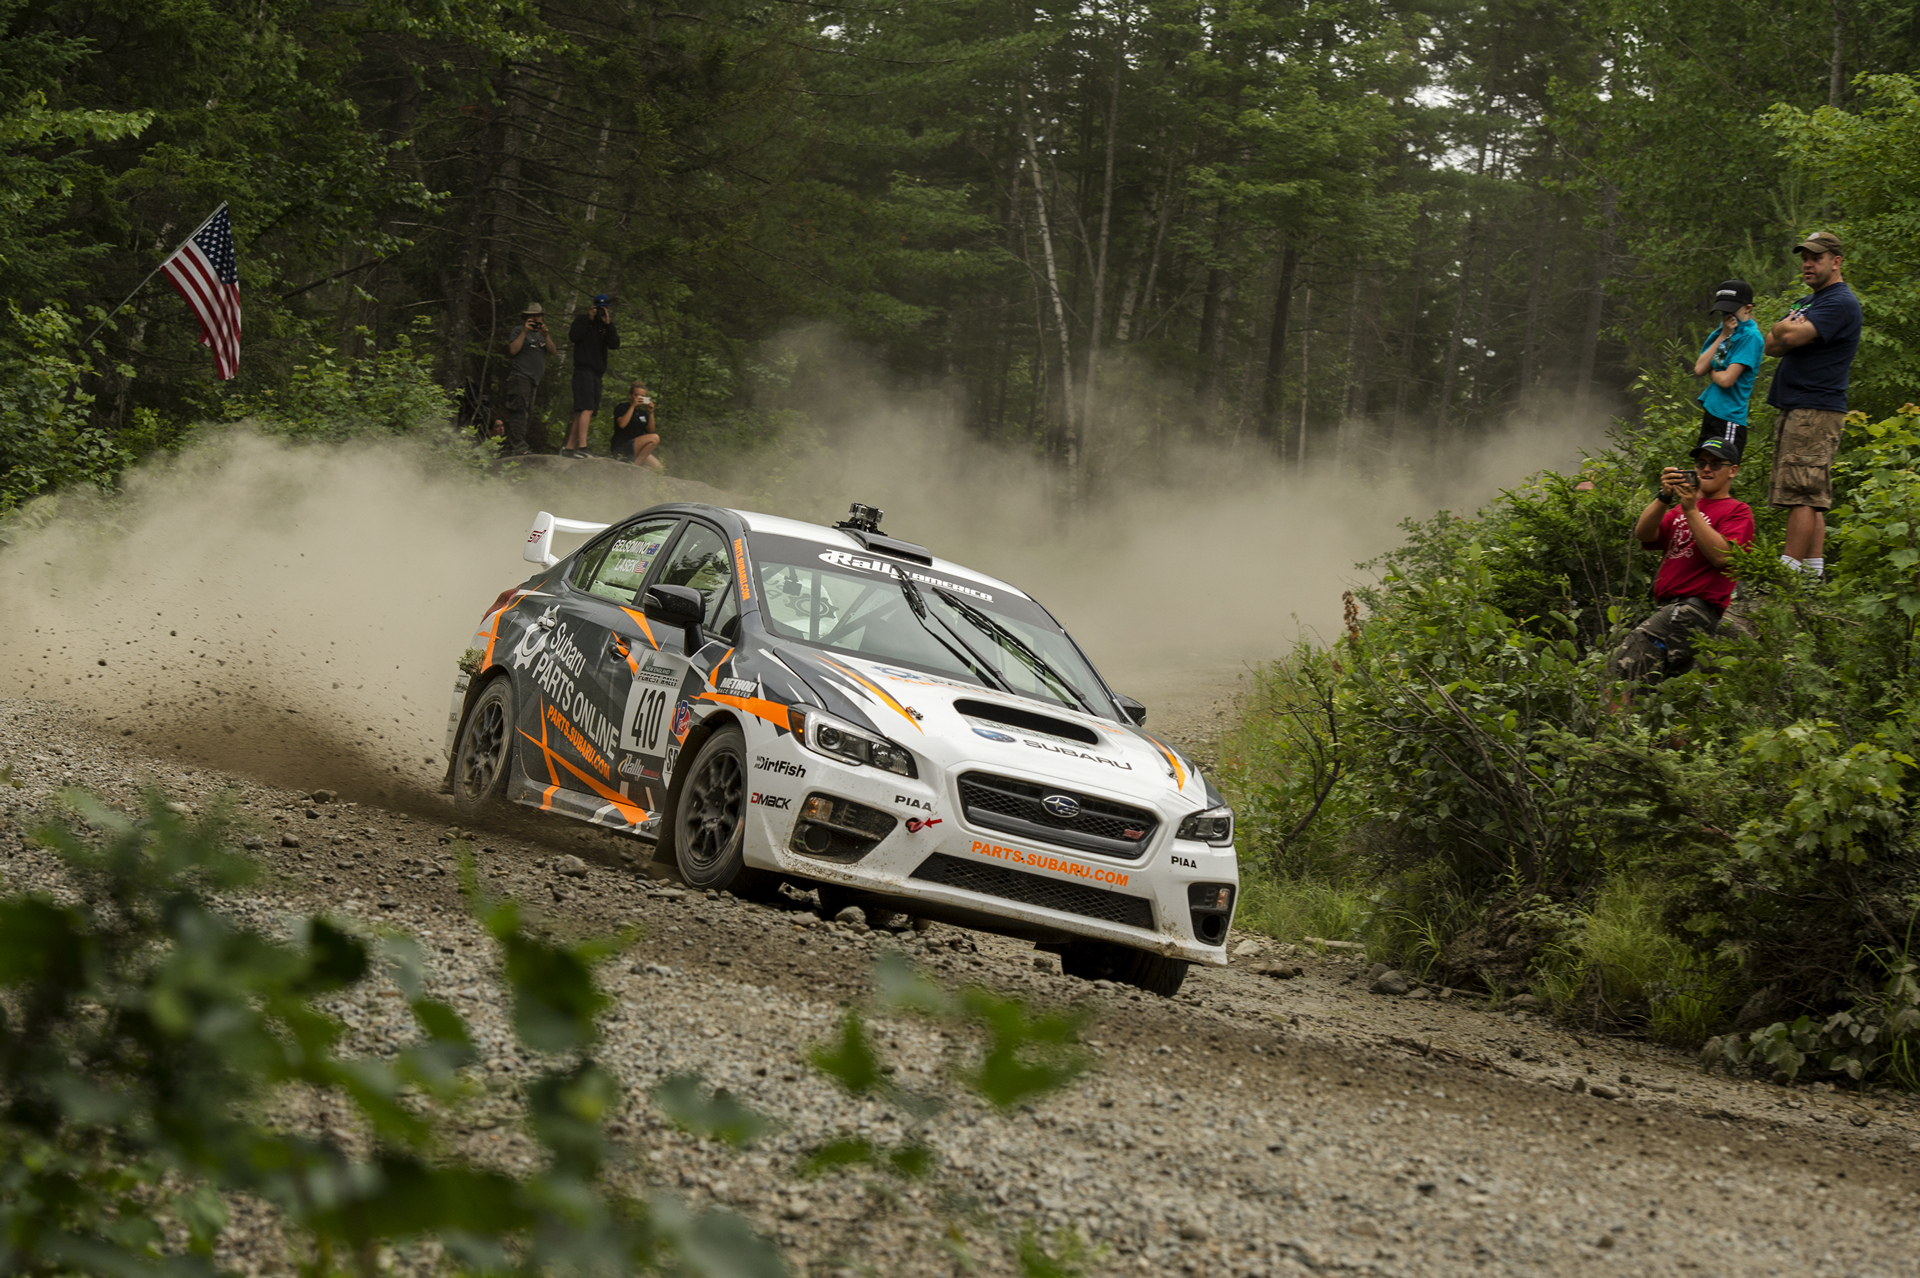 Bucky Lasek put his Subaru Parts Online WRX STI on the podium at New England Forest Rally © Fuji Heavy Industries, Ltd.